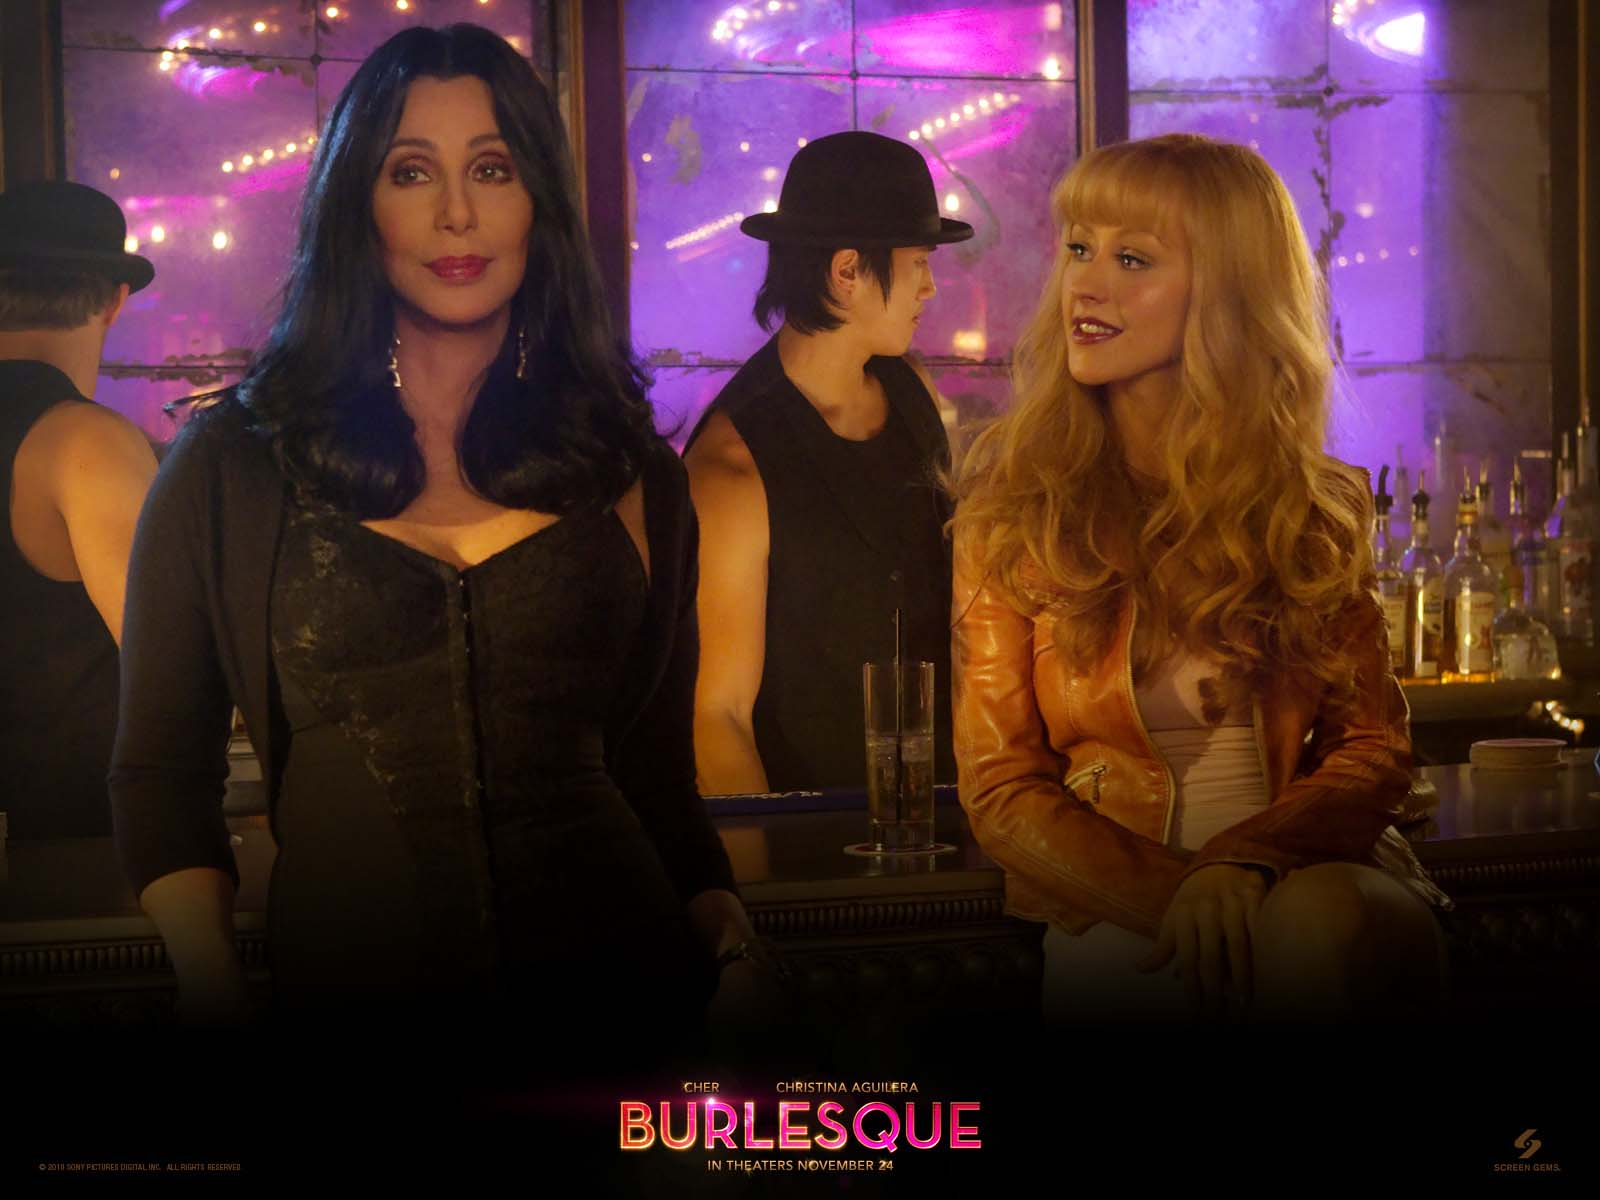 A MILLION OF WALLPAPERS.COM: BURLESQUE MOVIE WALLPAPERS ...